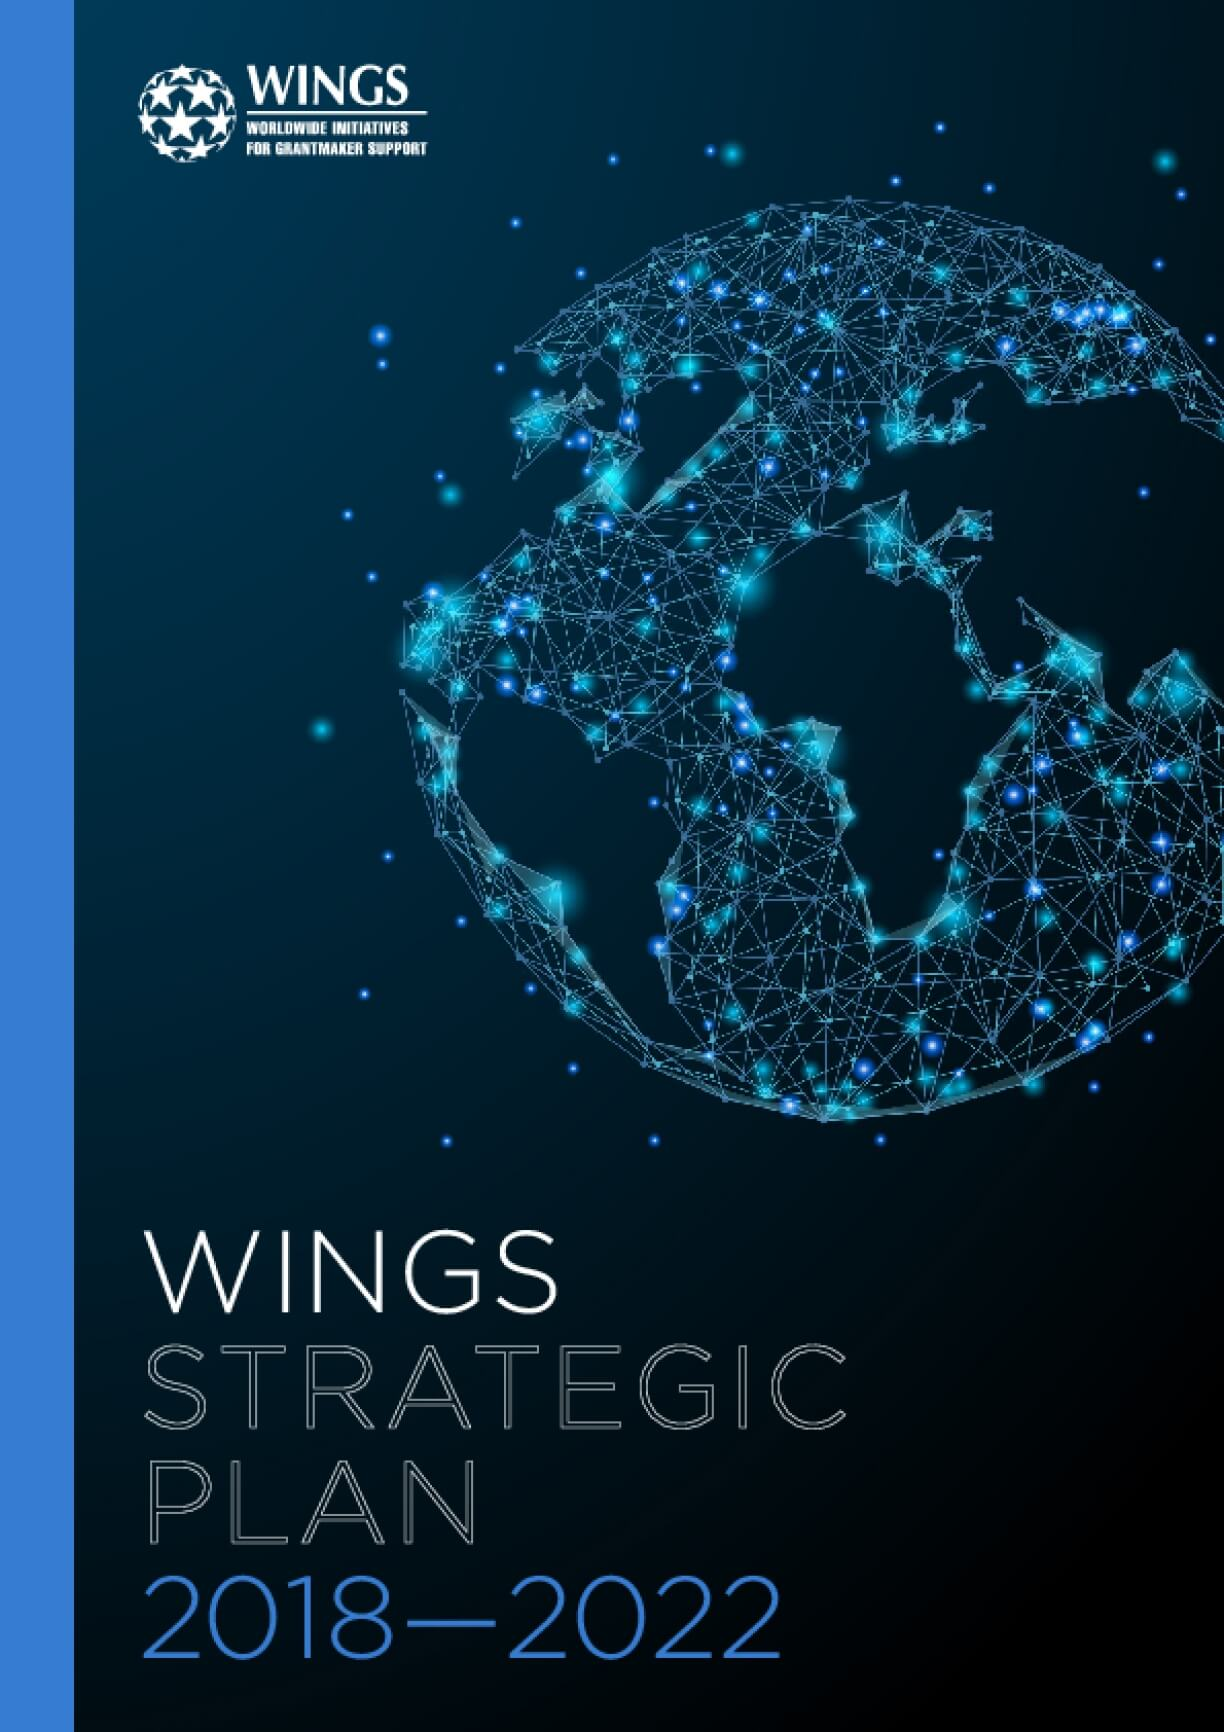 WINGS Strategic Plan 2018-2022